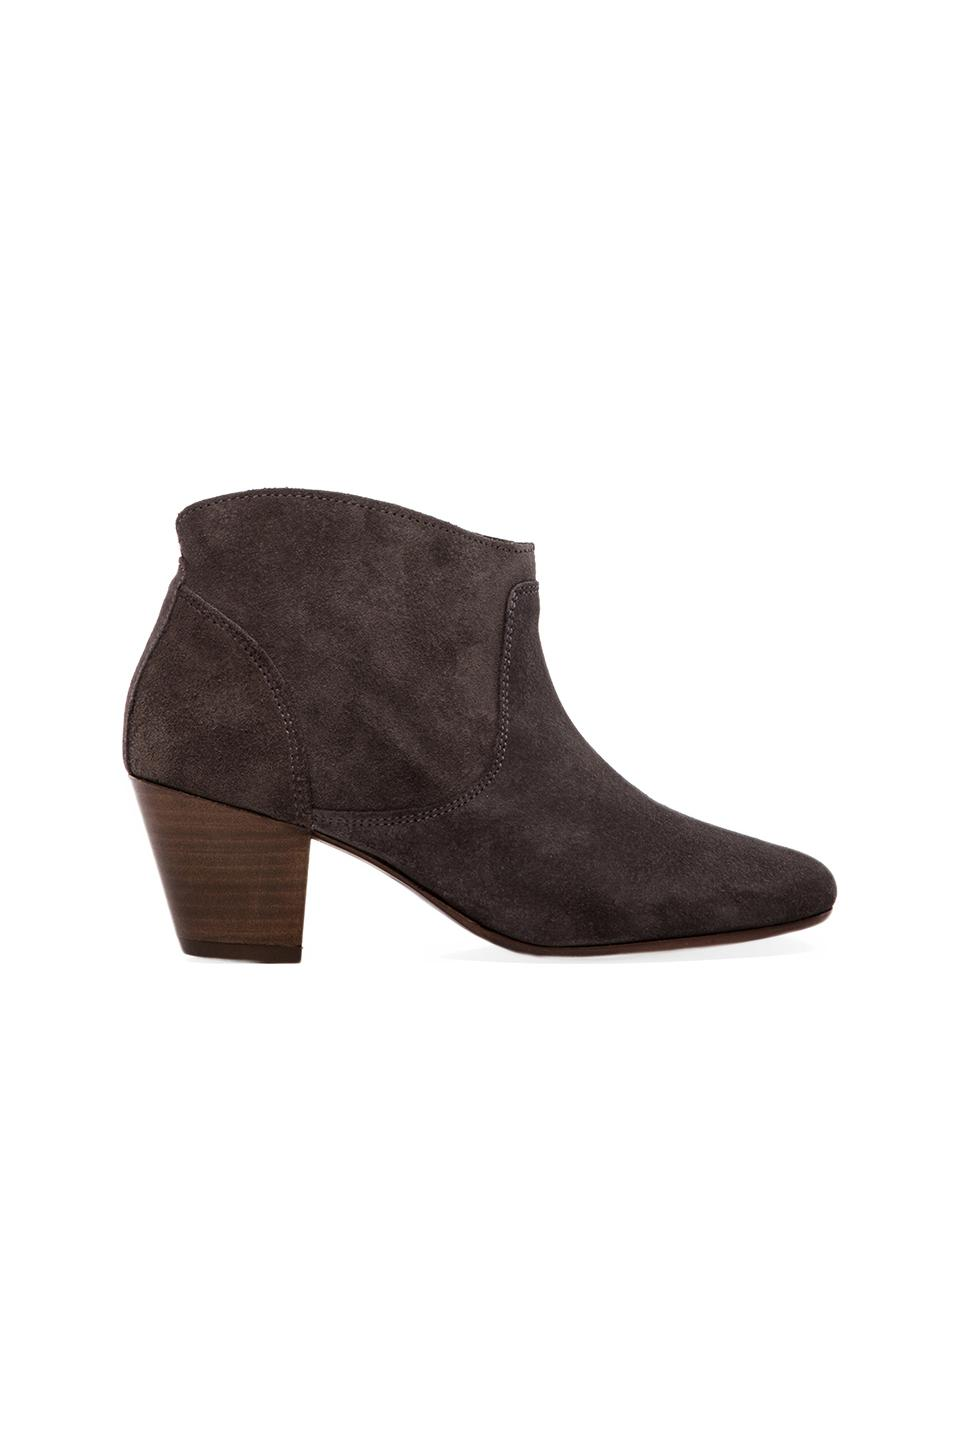 H by Hudson Mirar Bootie in Suede Grey